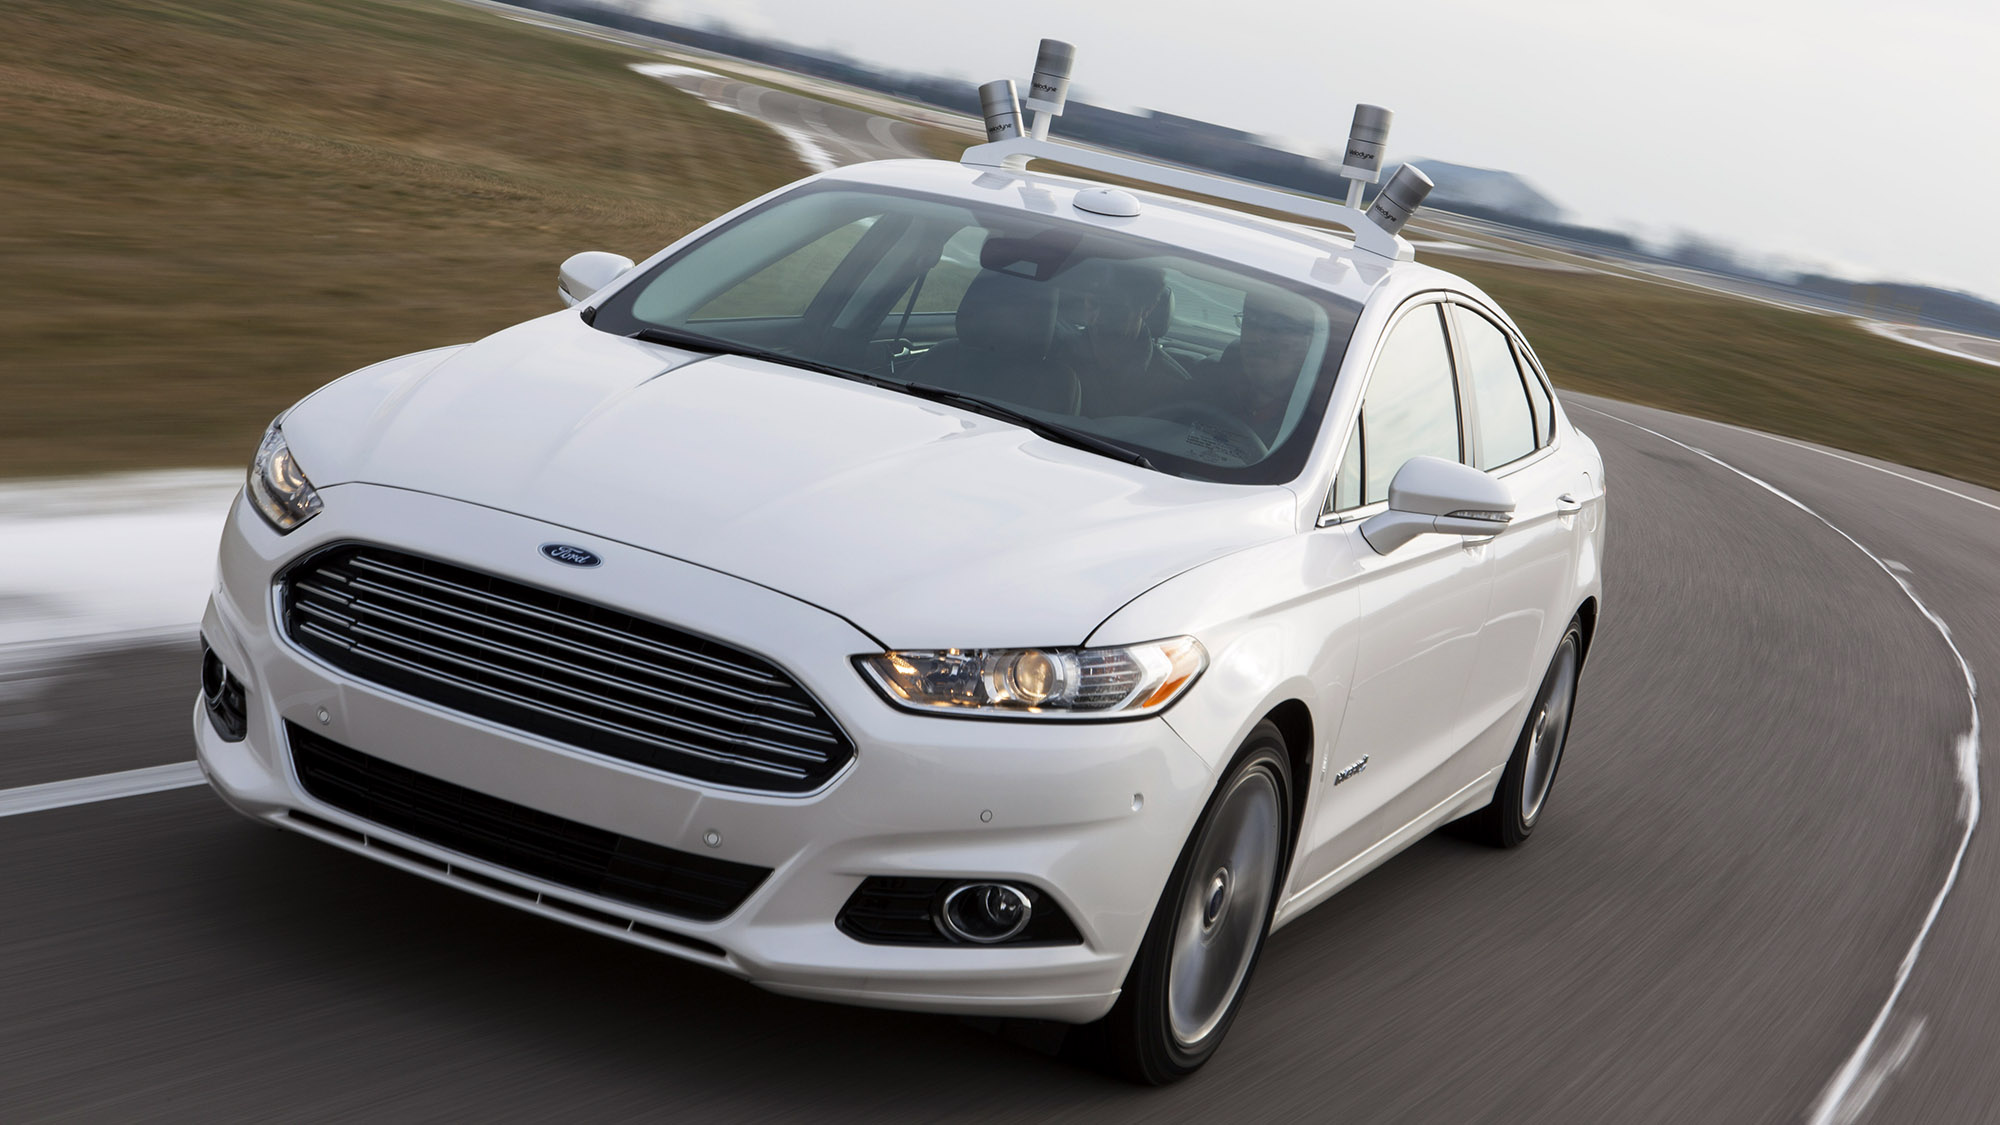 Ford has announced plans to collaborate with ride-hailing platform Lyft to deploy its self-driving vehicles in large numbers by 2021 speeding adoption ... & Lyft and Ford to partner for self-driving car network | Mobile ... markmcfarlin.com